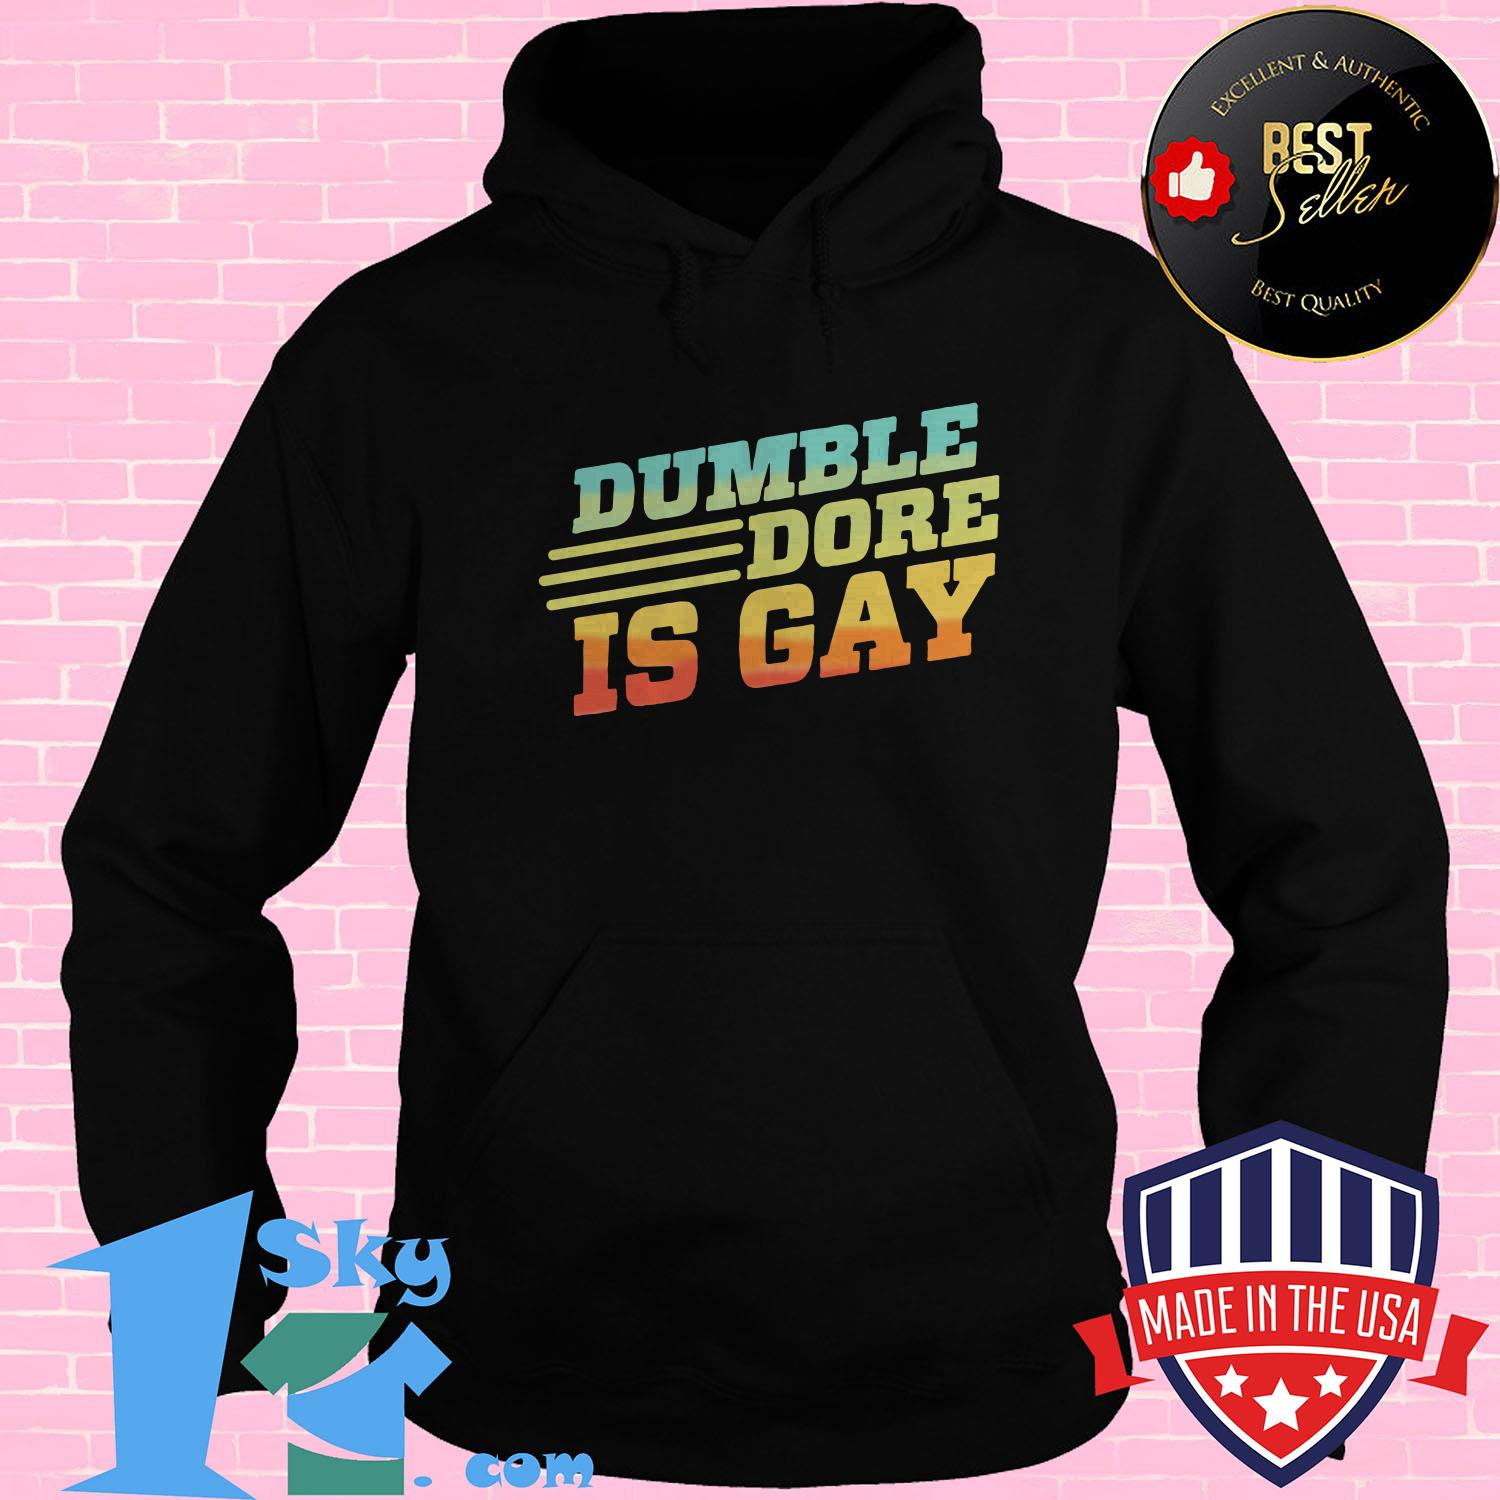 dumbledore is gay expecto equality hoodie - Dumbledore Is Gay Expecto Equality shirt